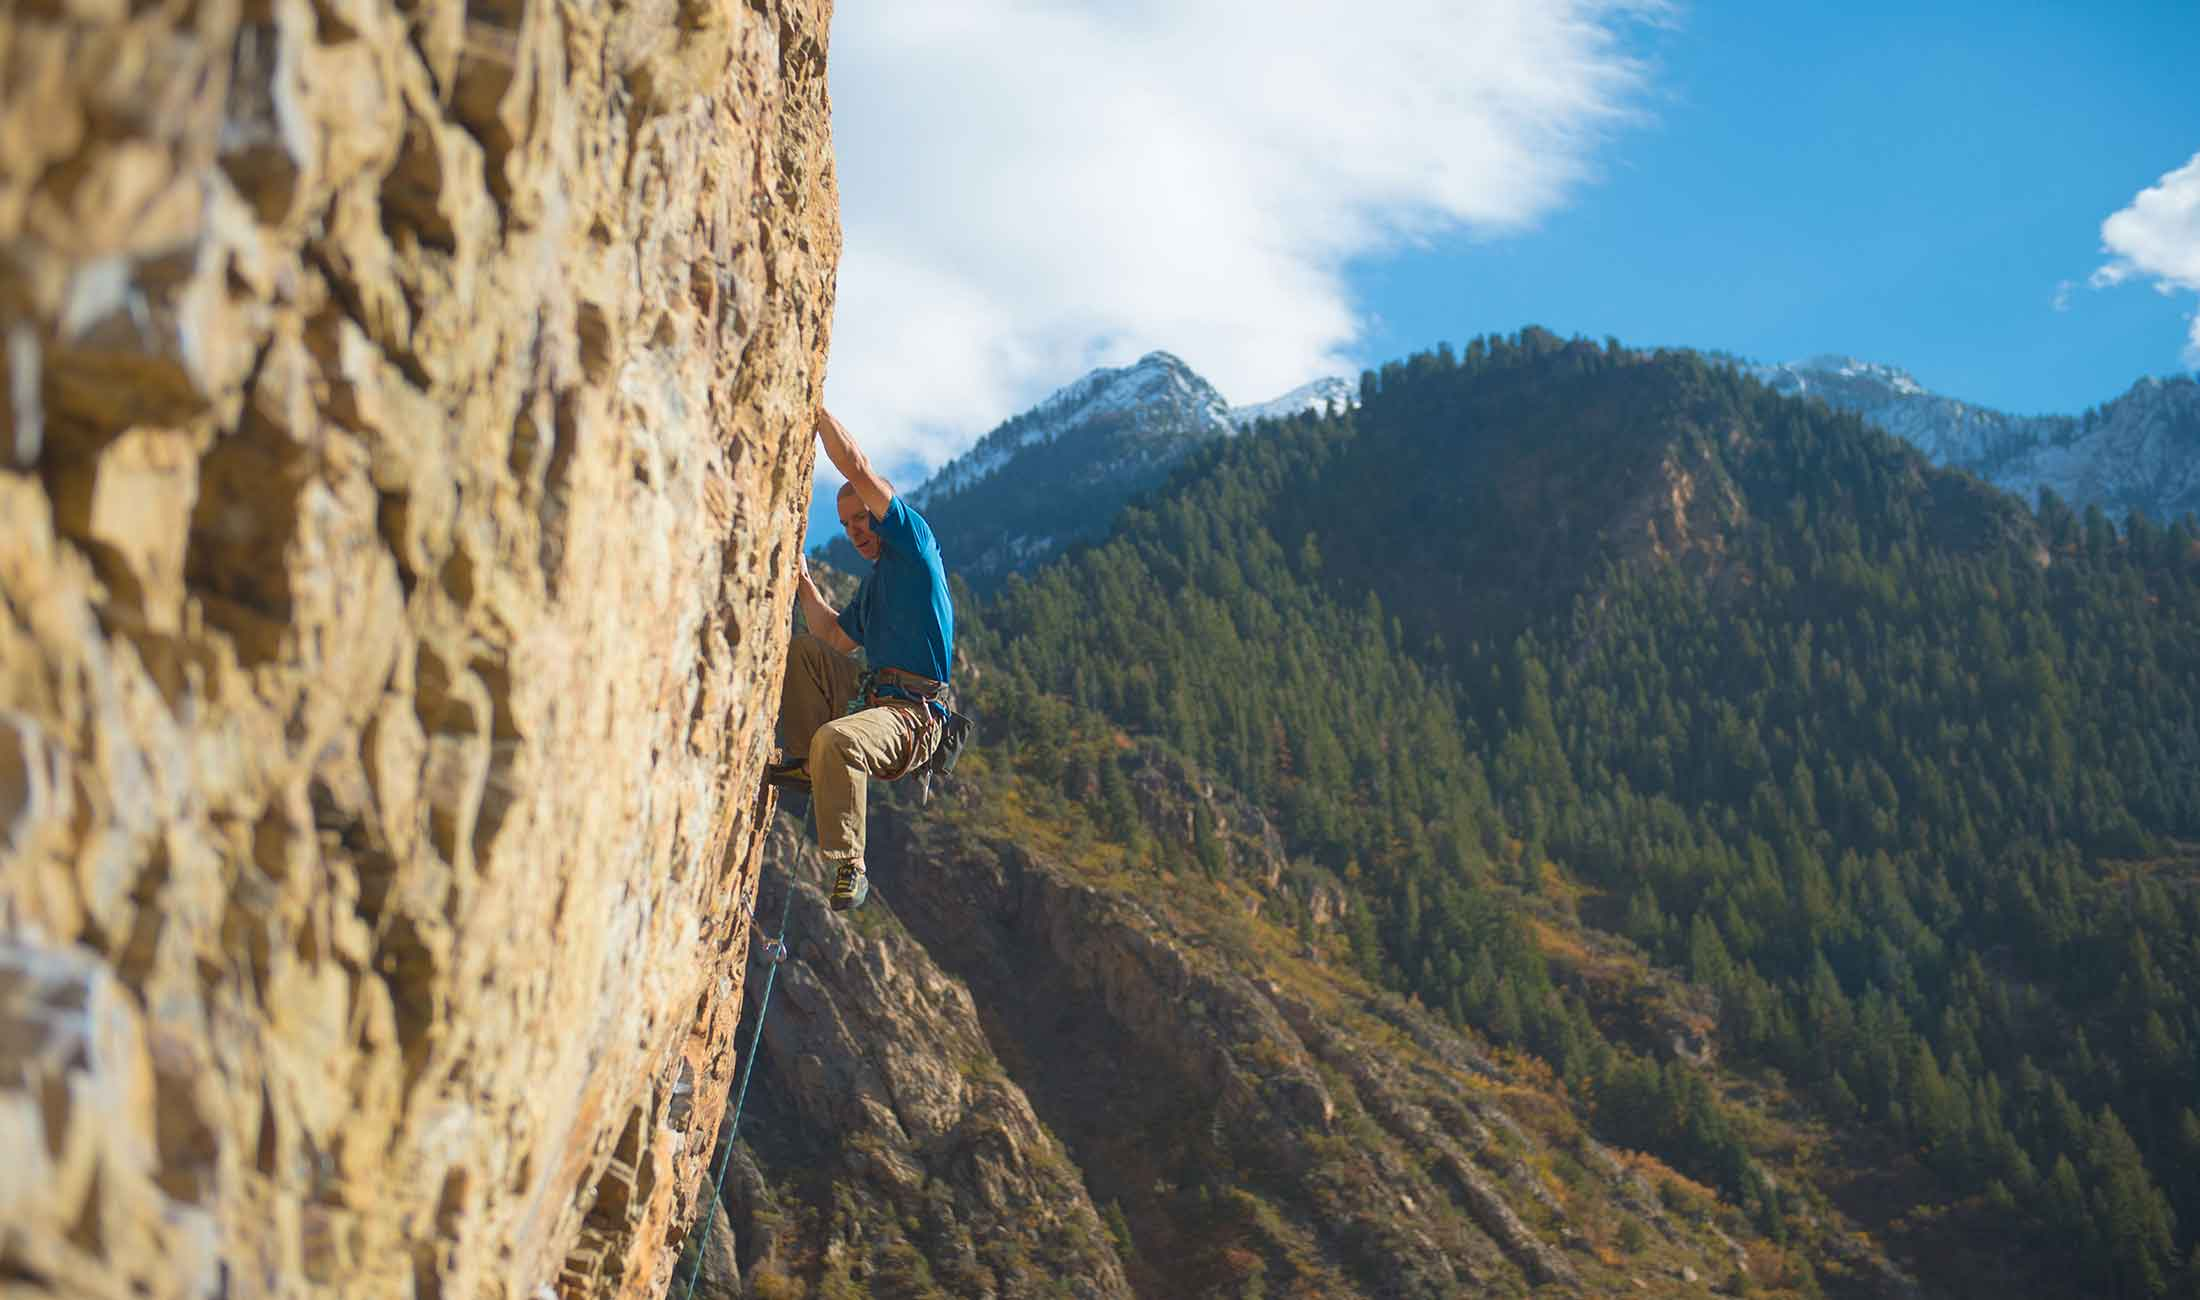 Big walls to bouldering, Utah's got it.